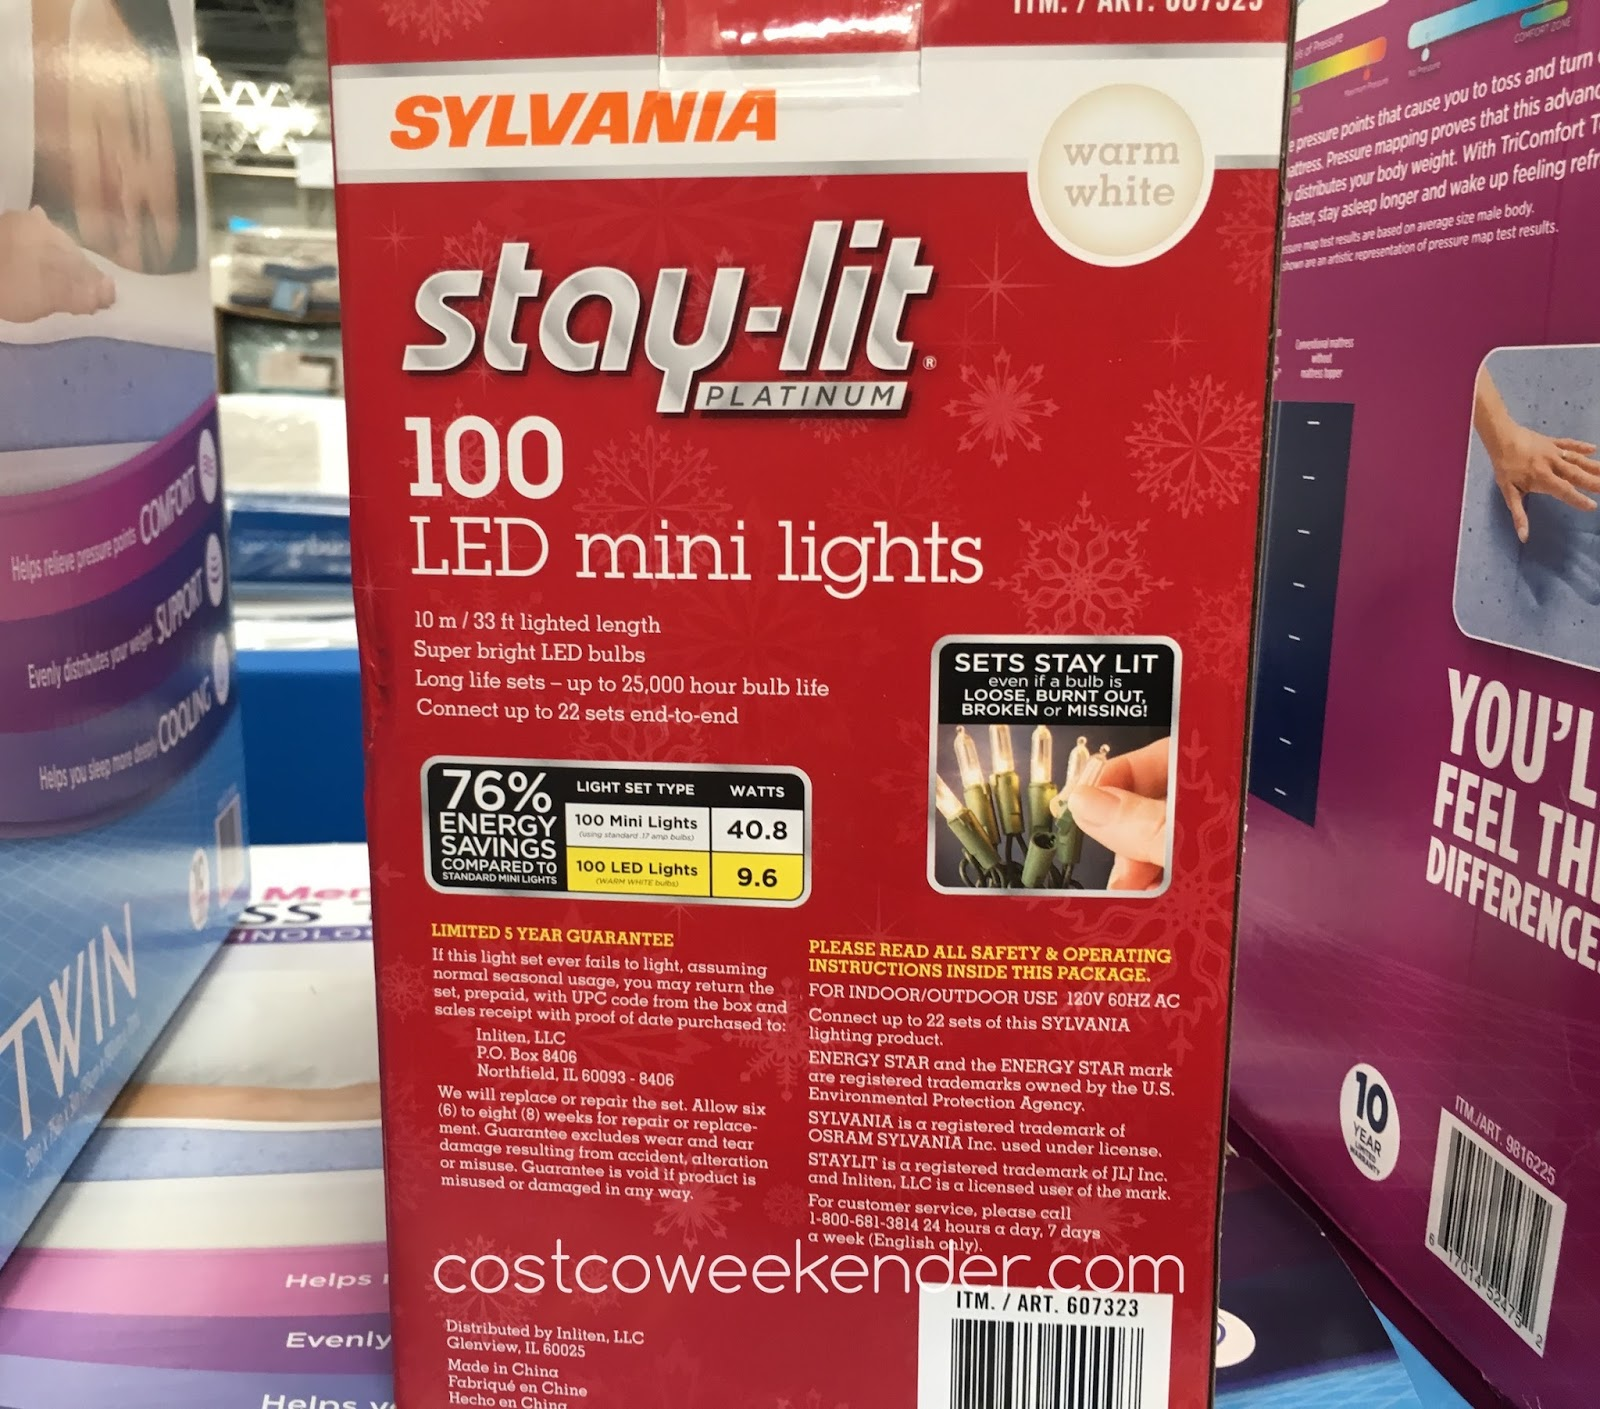 Costco 607323 - Get ready for the holiday season with the Sylvania Stay-lit 100 LED Mini Lights